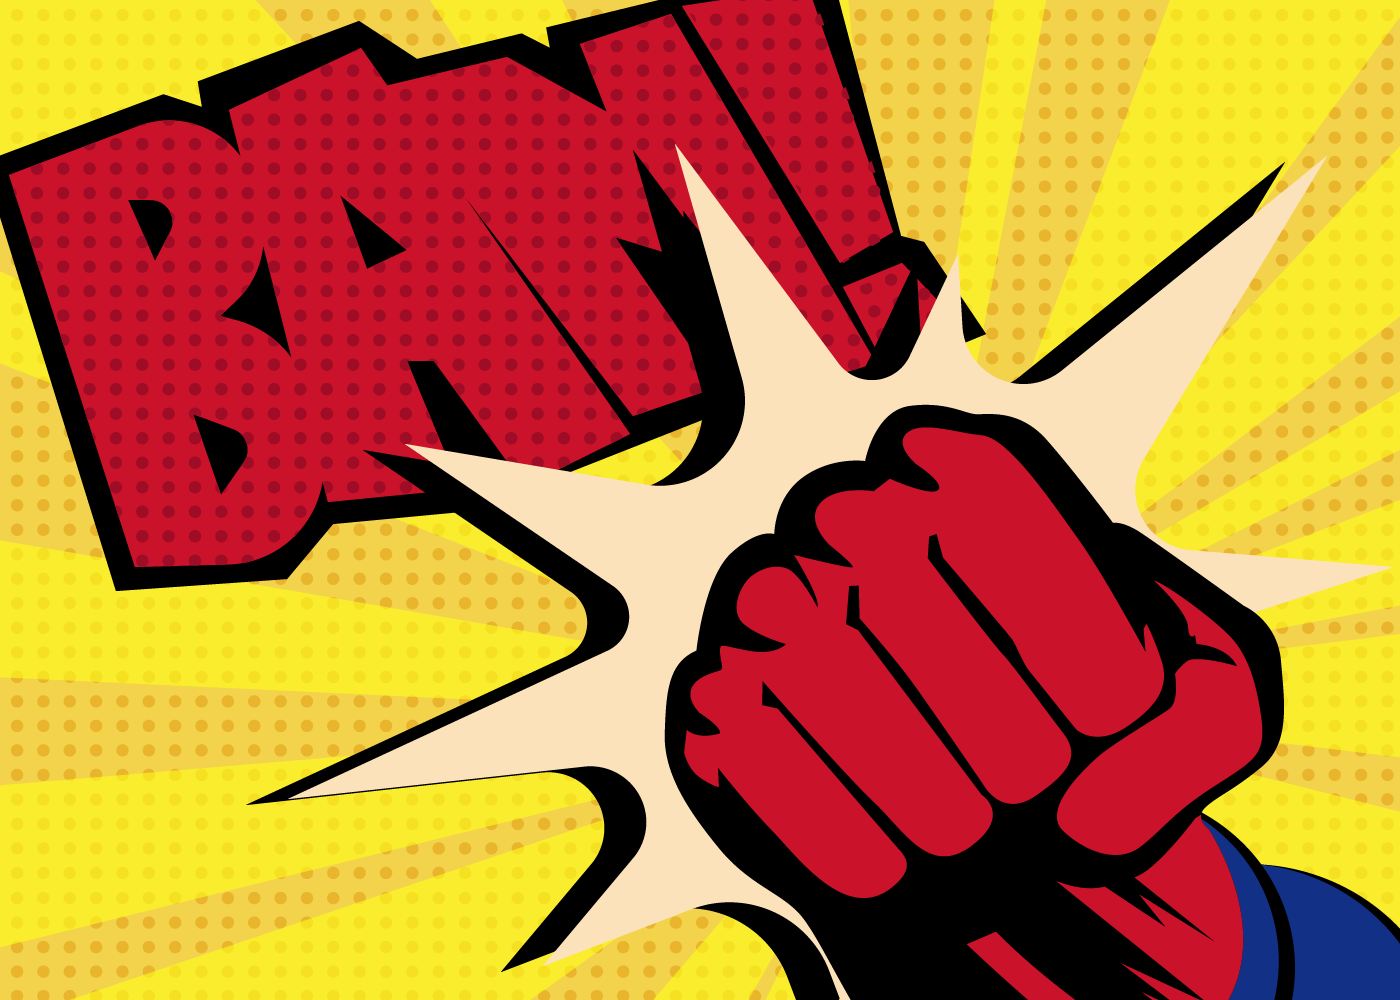 """Comic book drawing of a fist punching and the word """"BAM!"""""""